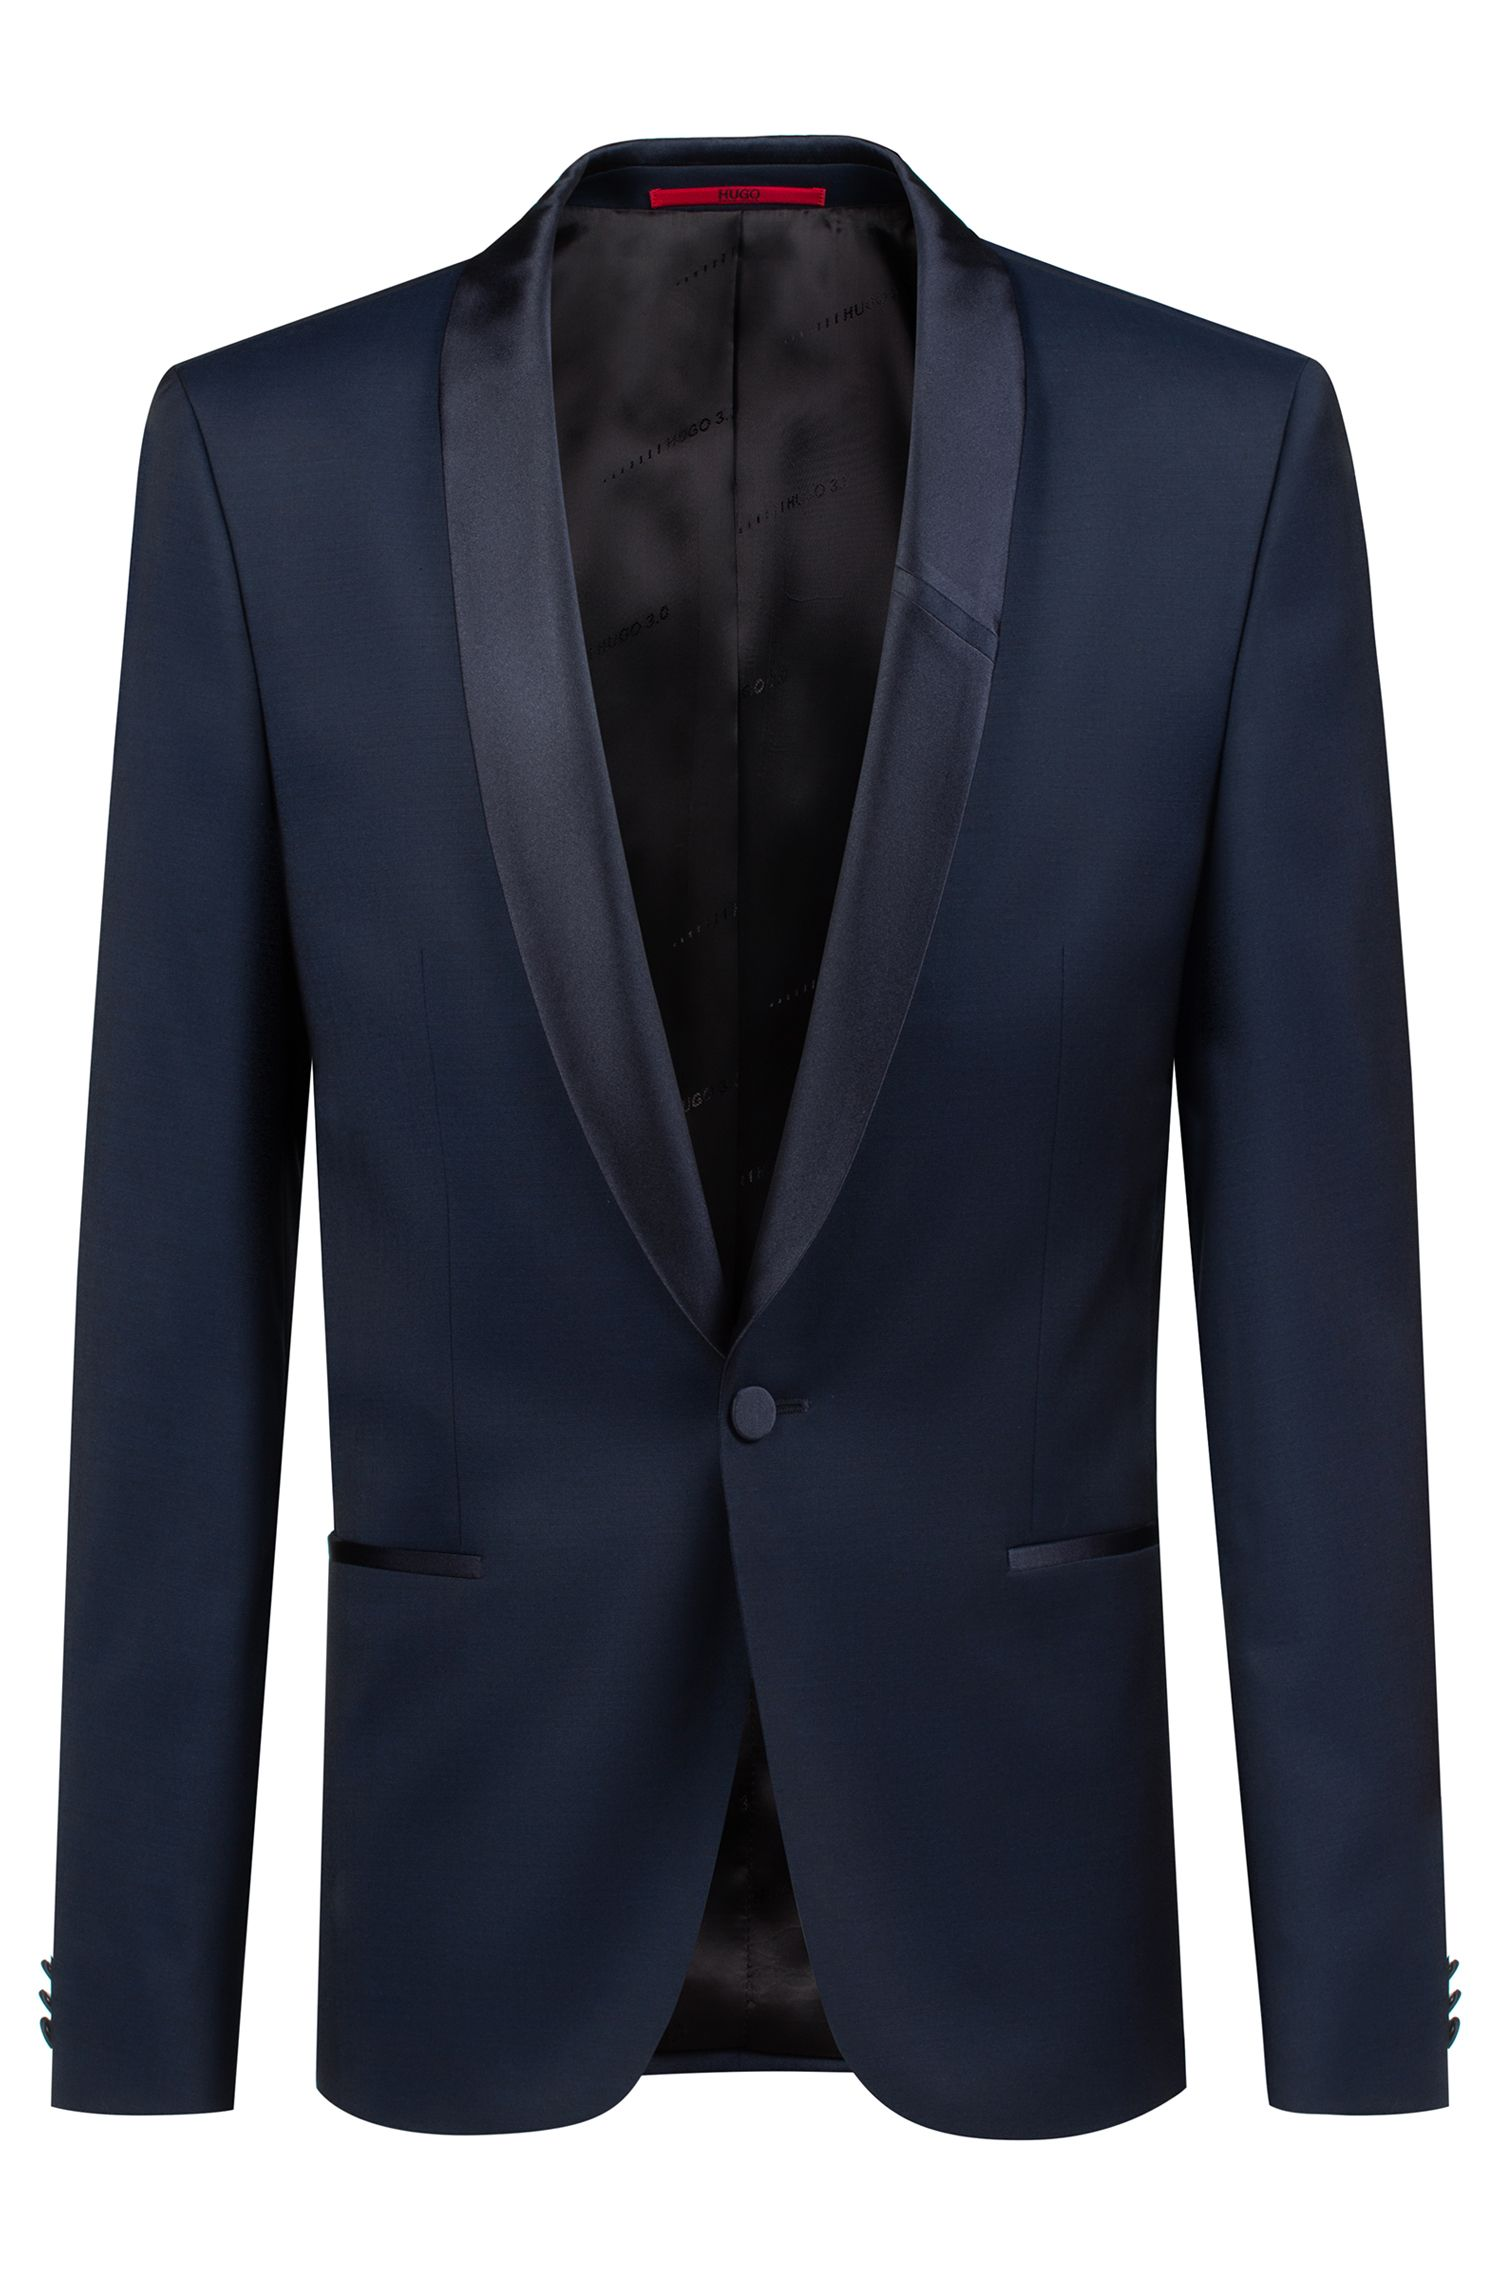 Bits & Bytes Capsule extra-slim-fit jacket in virgin wool twill, Dark Blue